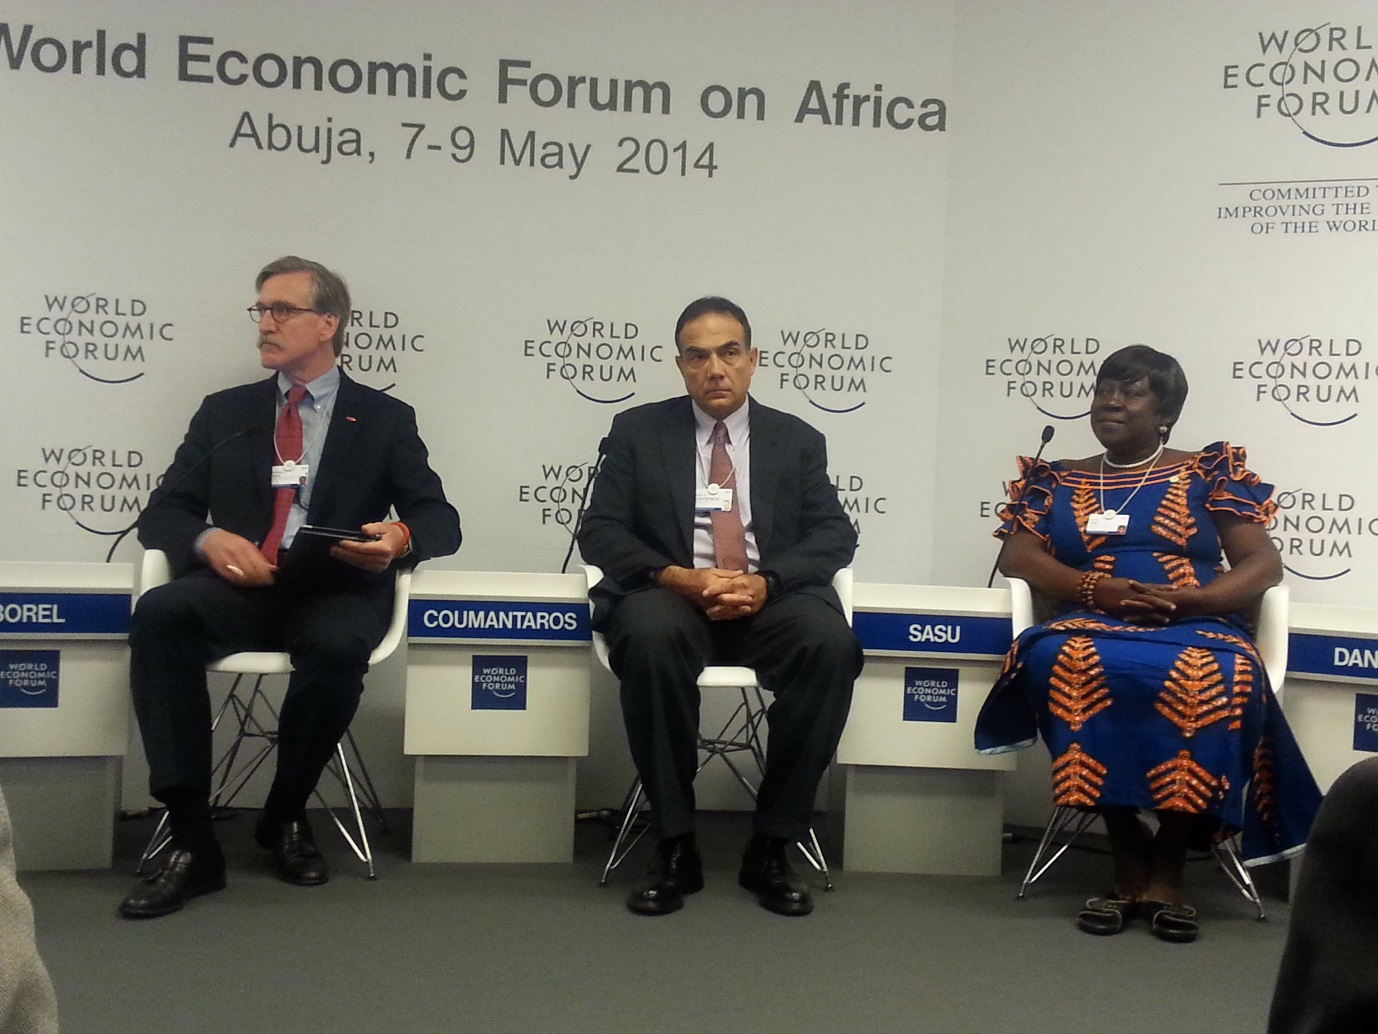 Lydia Sasu sitting at the extreme right as a panellist during the World Economic Forum on Africa